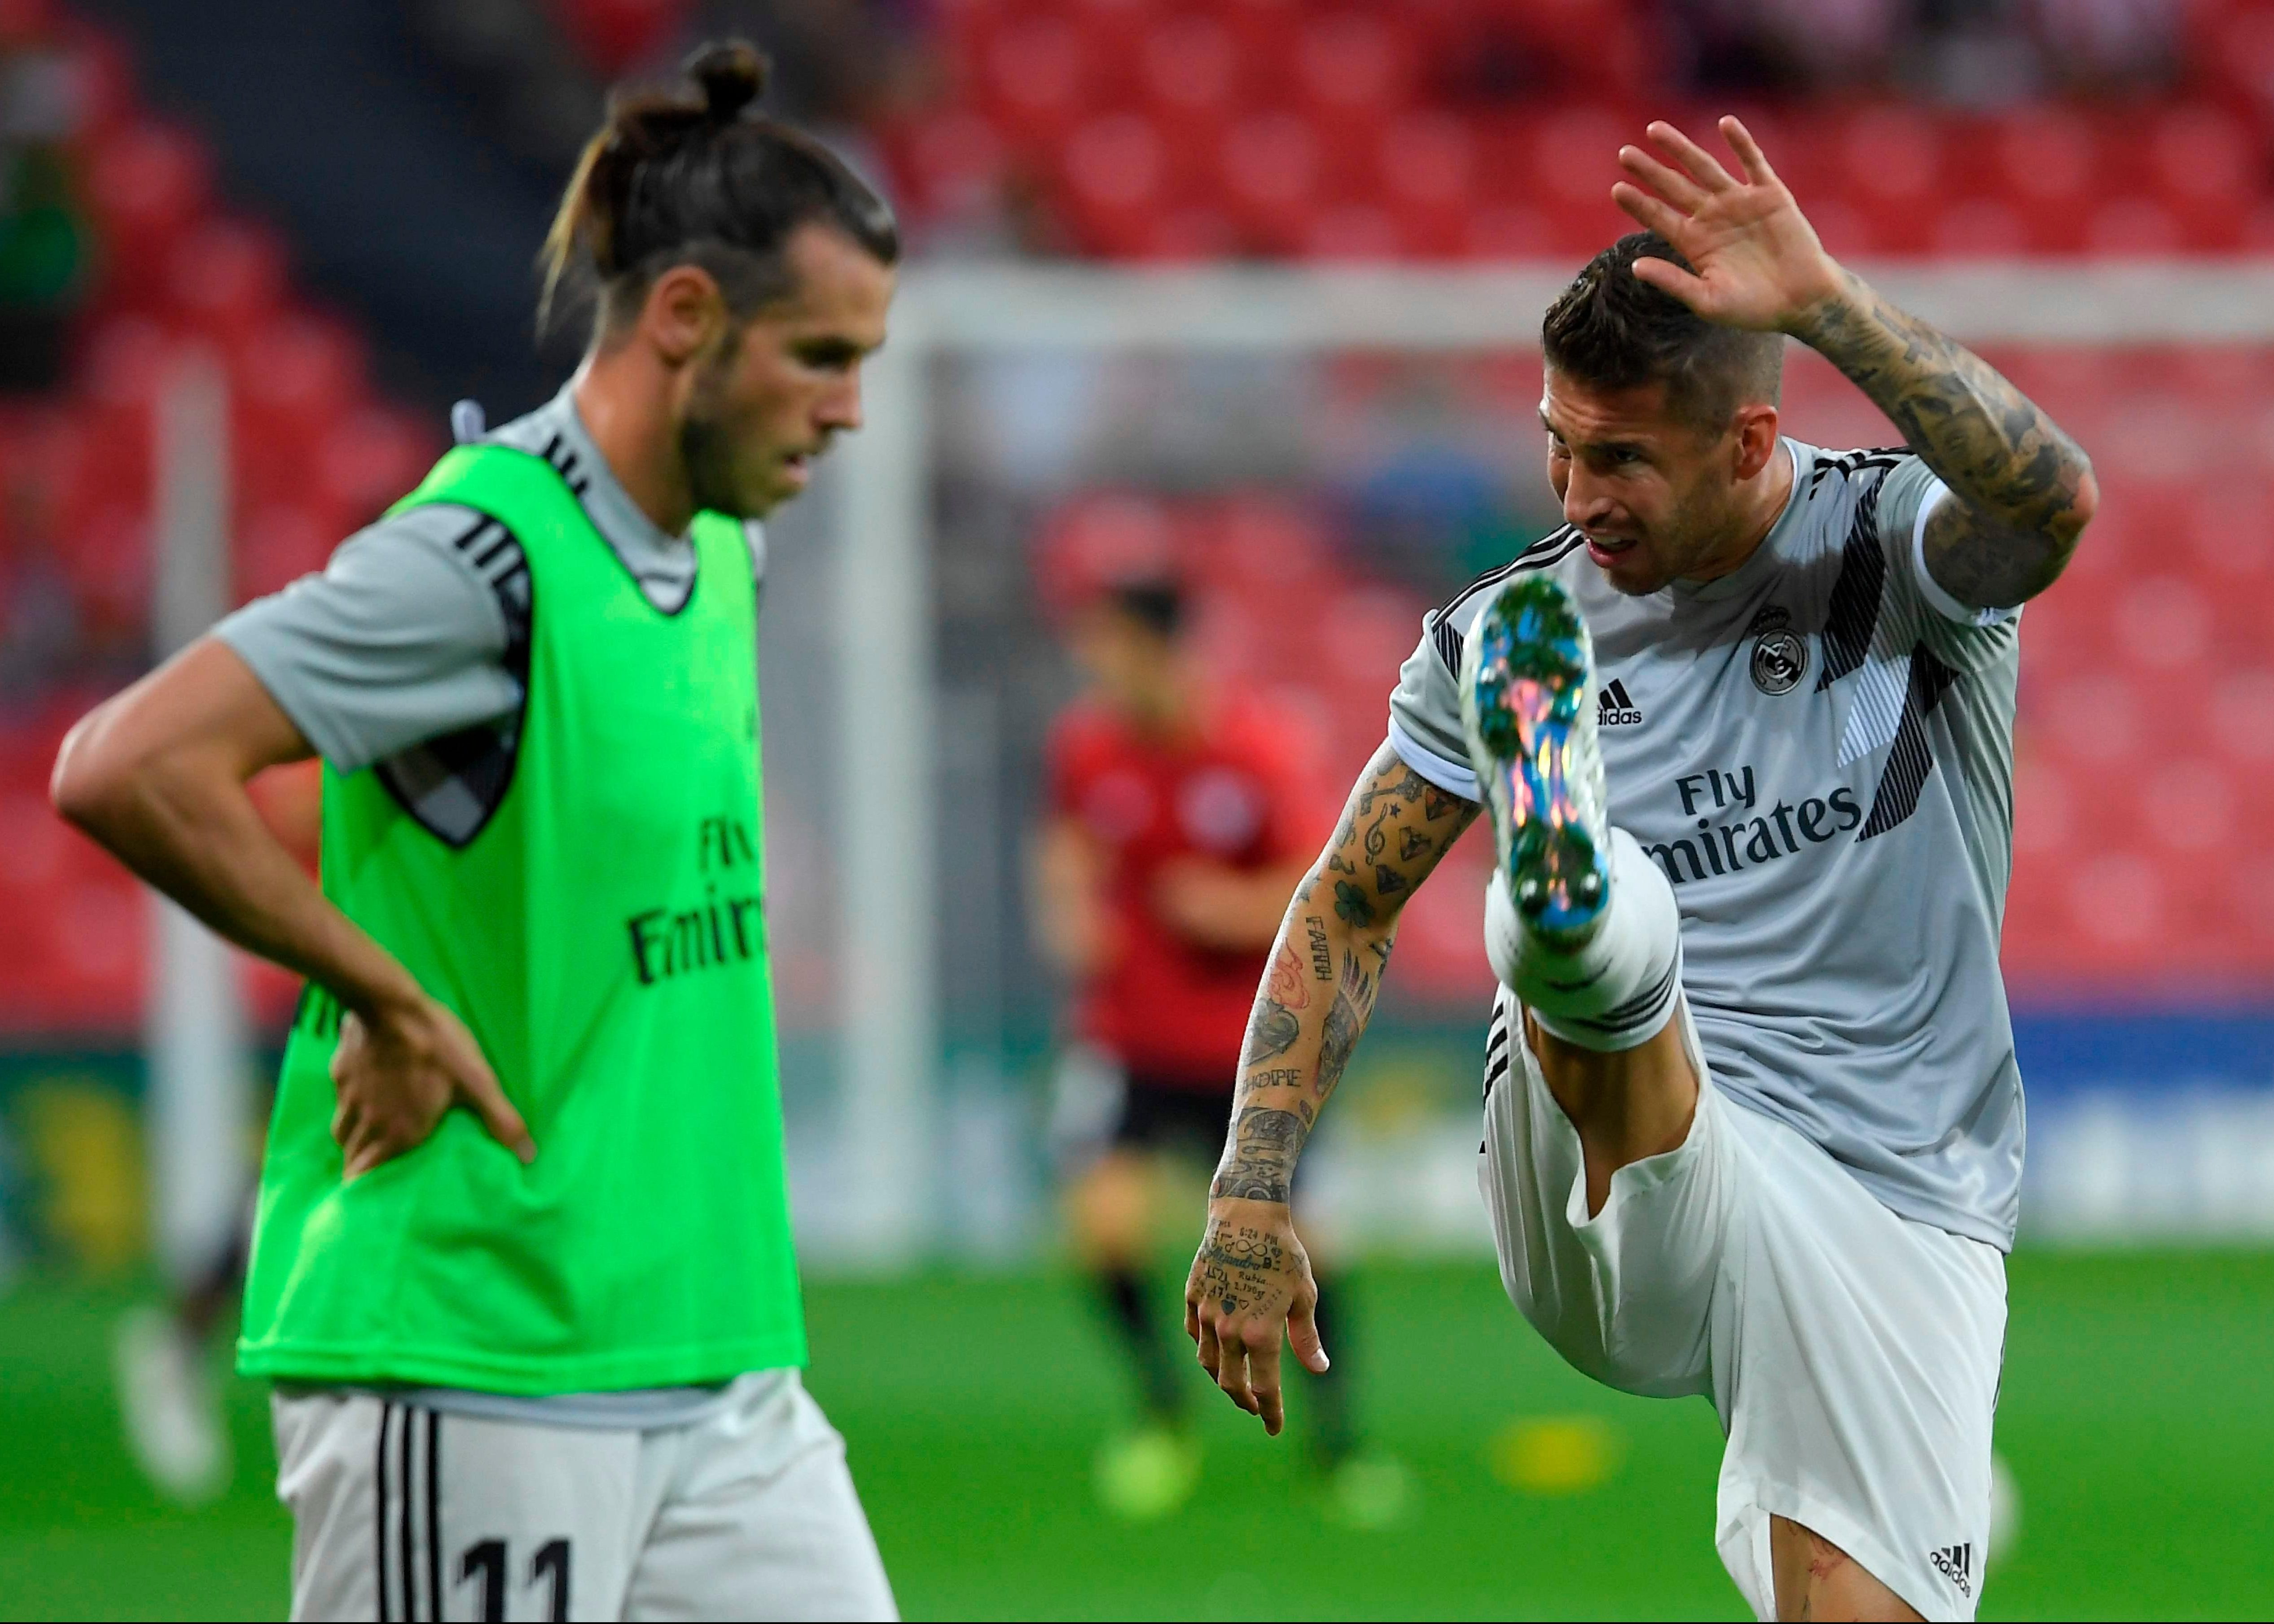 Gareth Bale and Sergio Ramos must step up after Real Madrid lost their main man Cristiano Ronaldo to Juventus in the summer